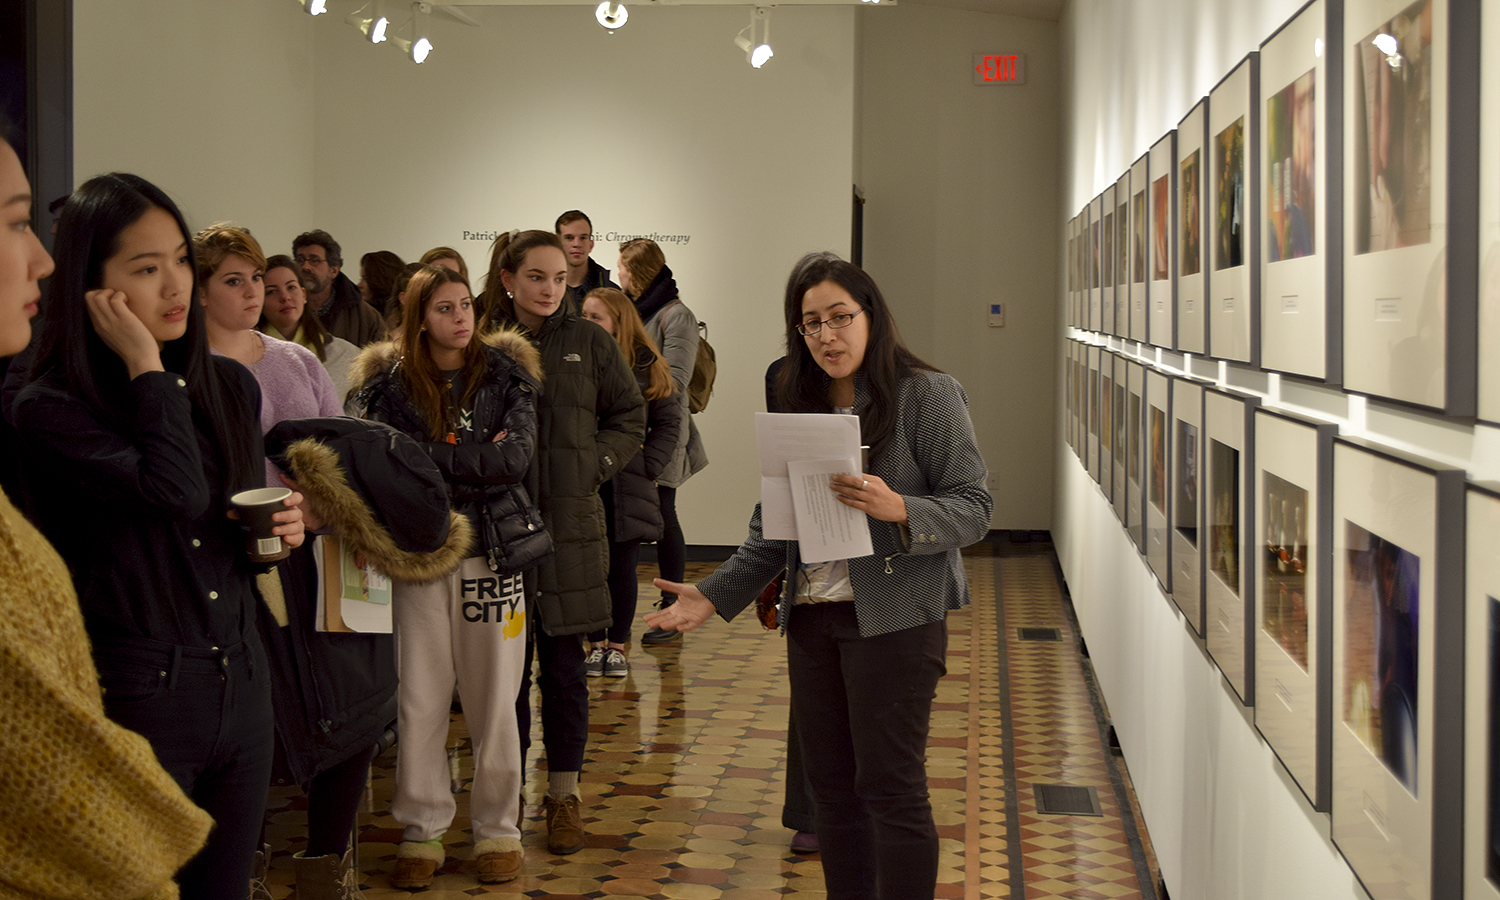 Associate Professor of Art and Architecture Christine Chin speaks at the opening of the Patrick Ryoichi Nagatani Gallery at the Davis Gallery in Houghton House.Opening of the Patrick Ryoichi Nagatani Gallery at the Davis Gallery in Houghton House.